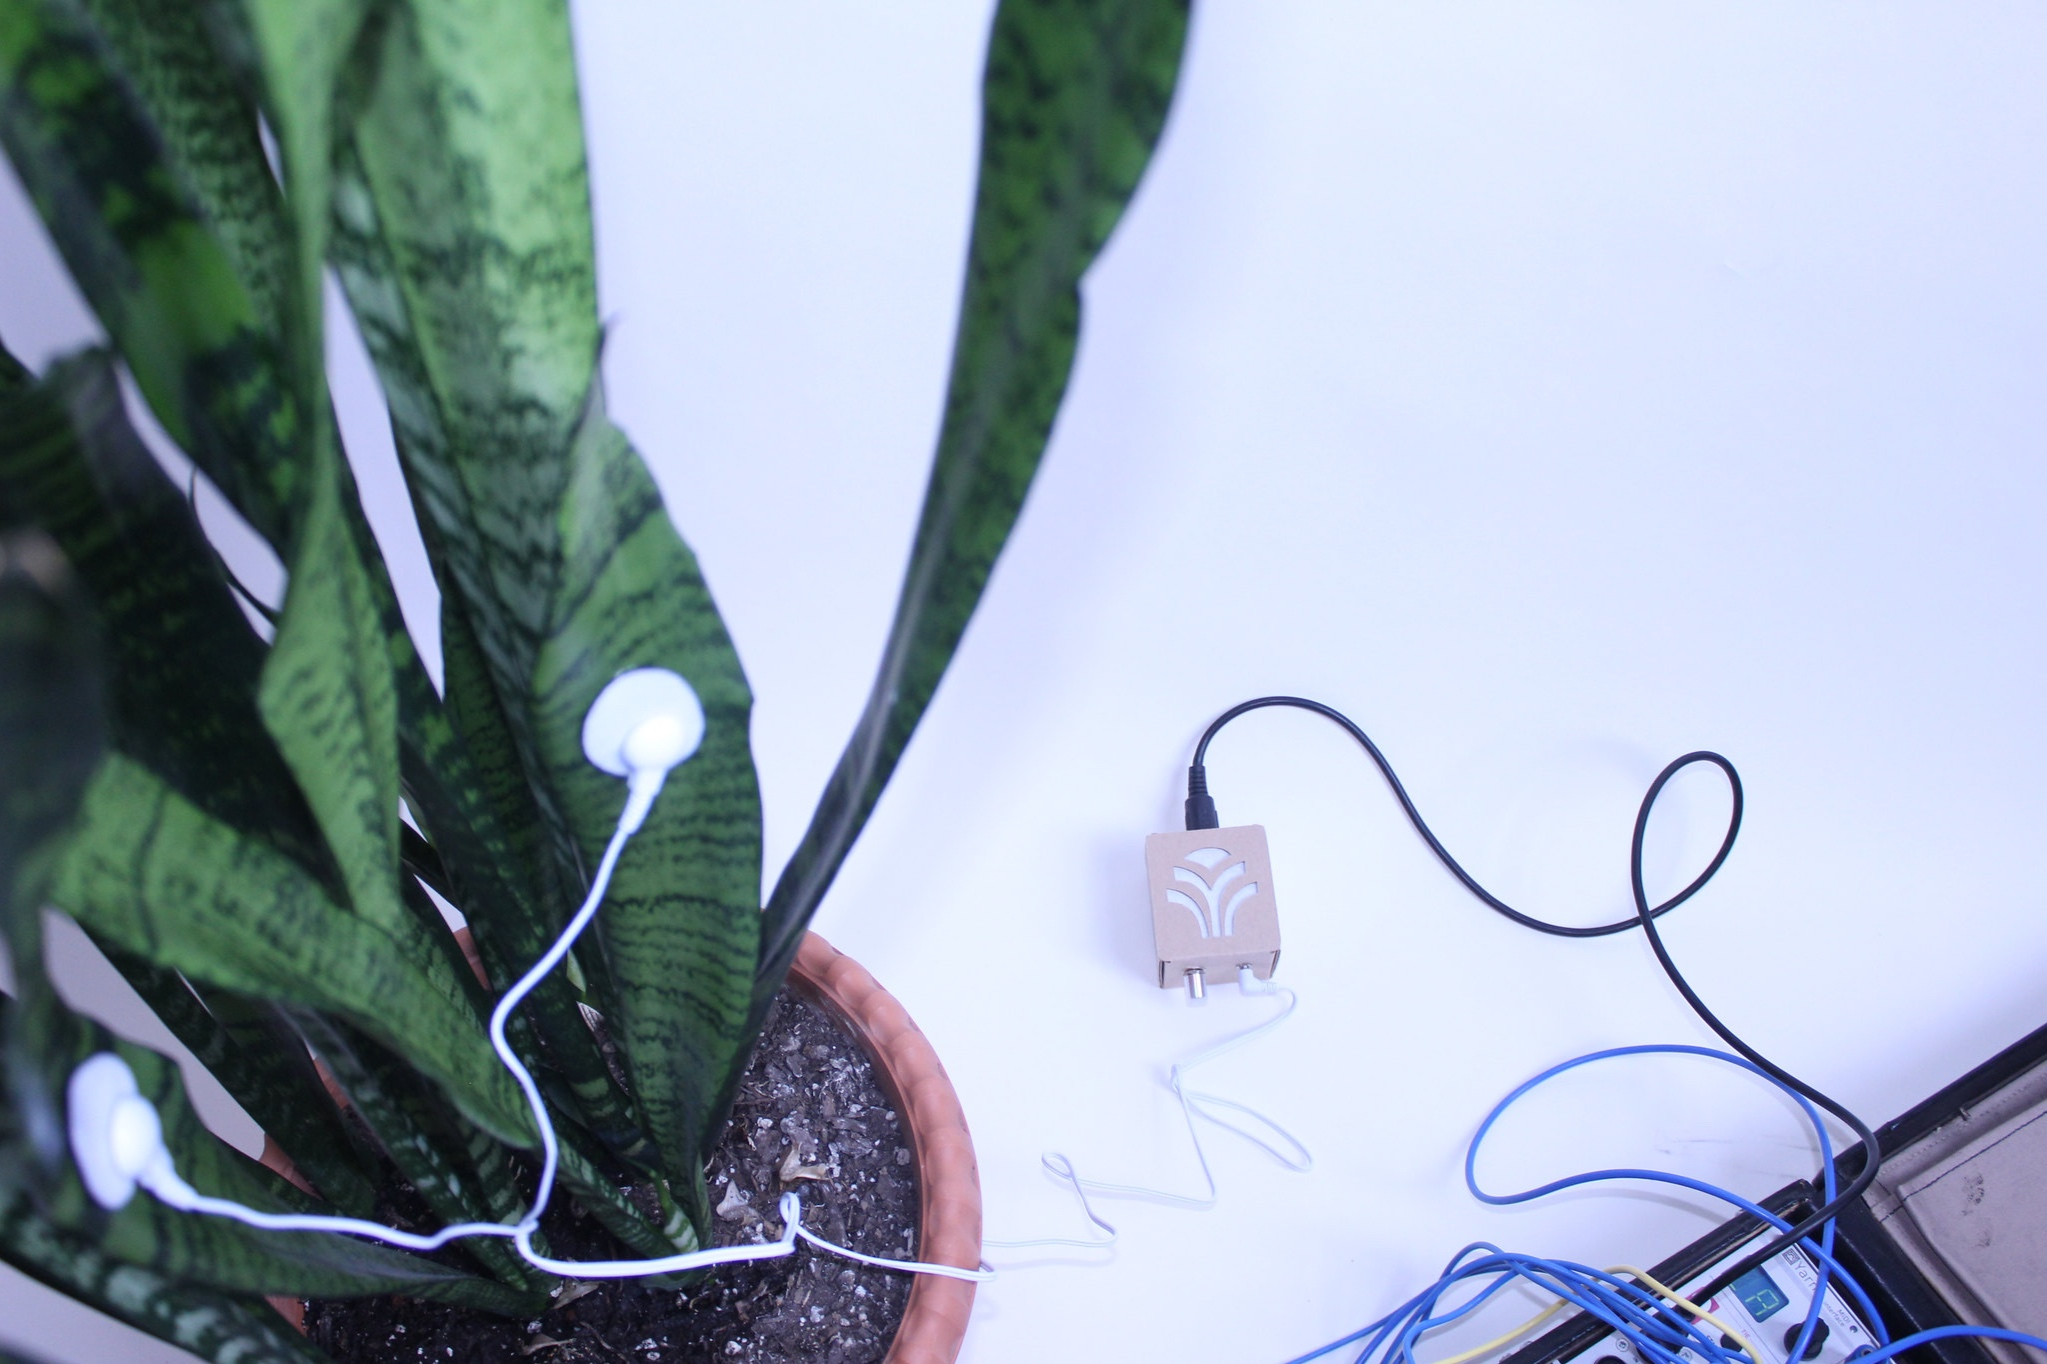 PlantWave: Plant Generated Music